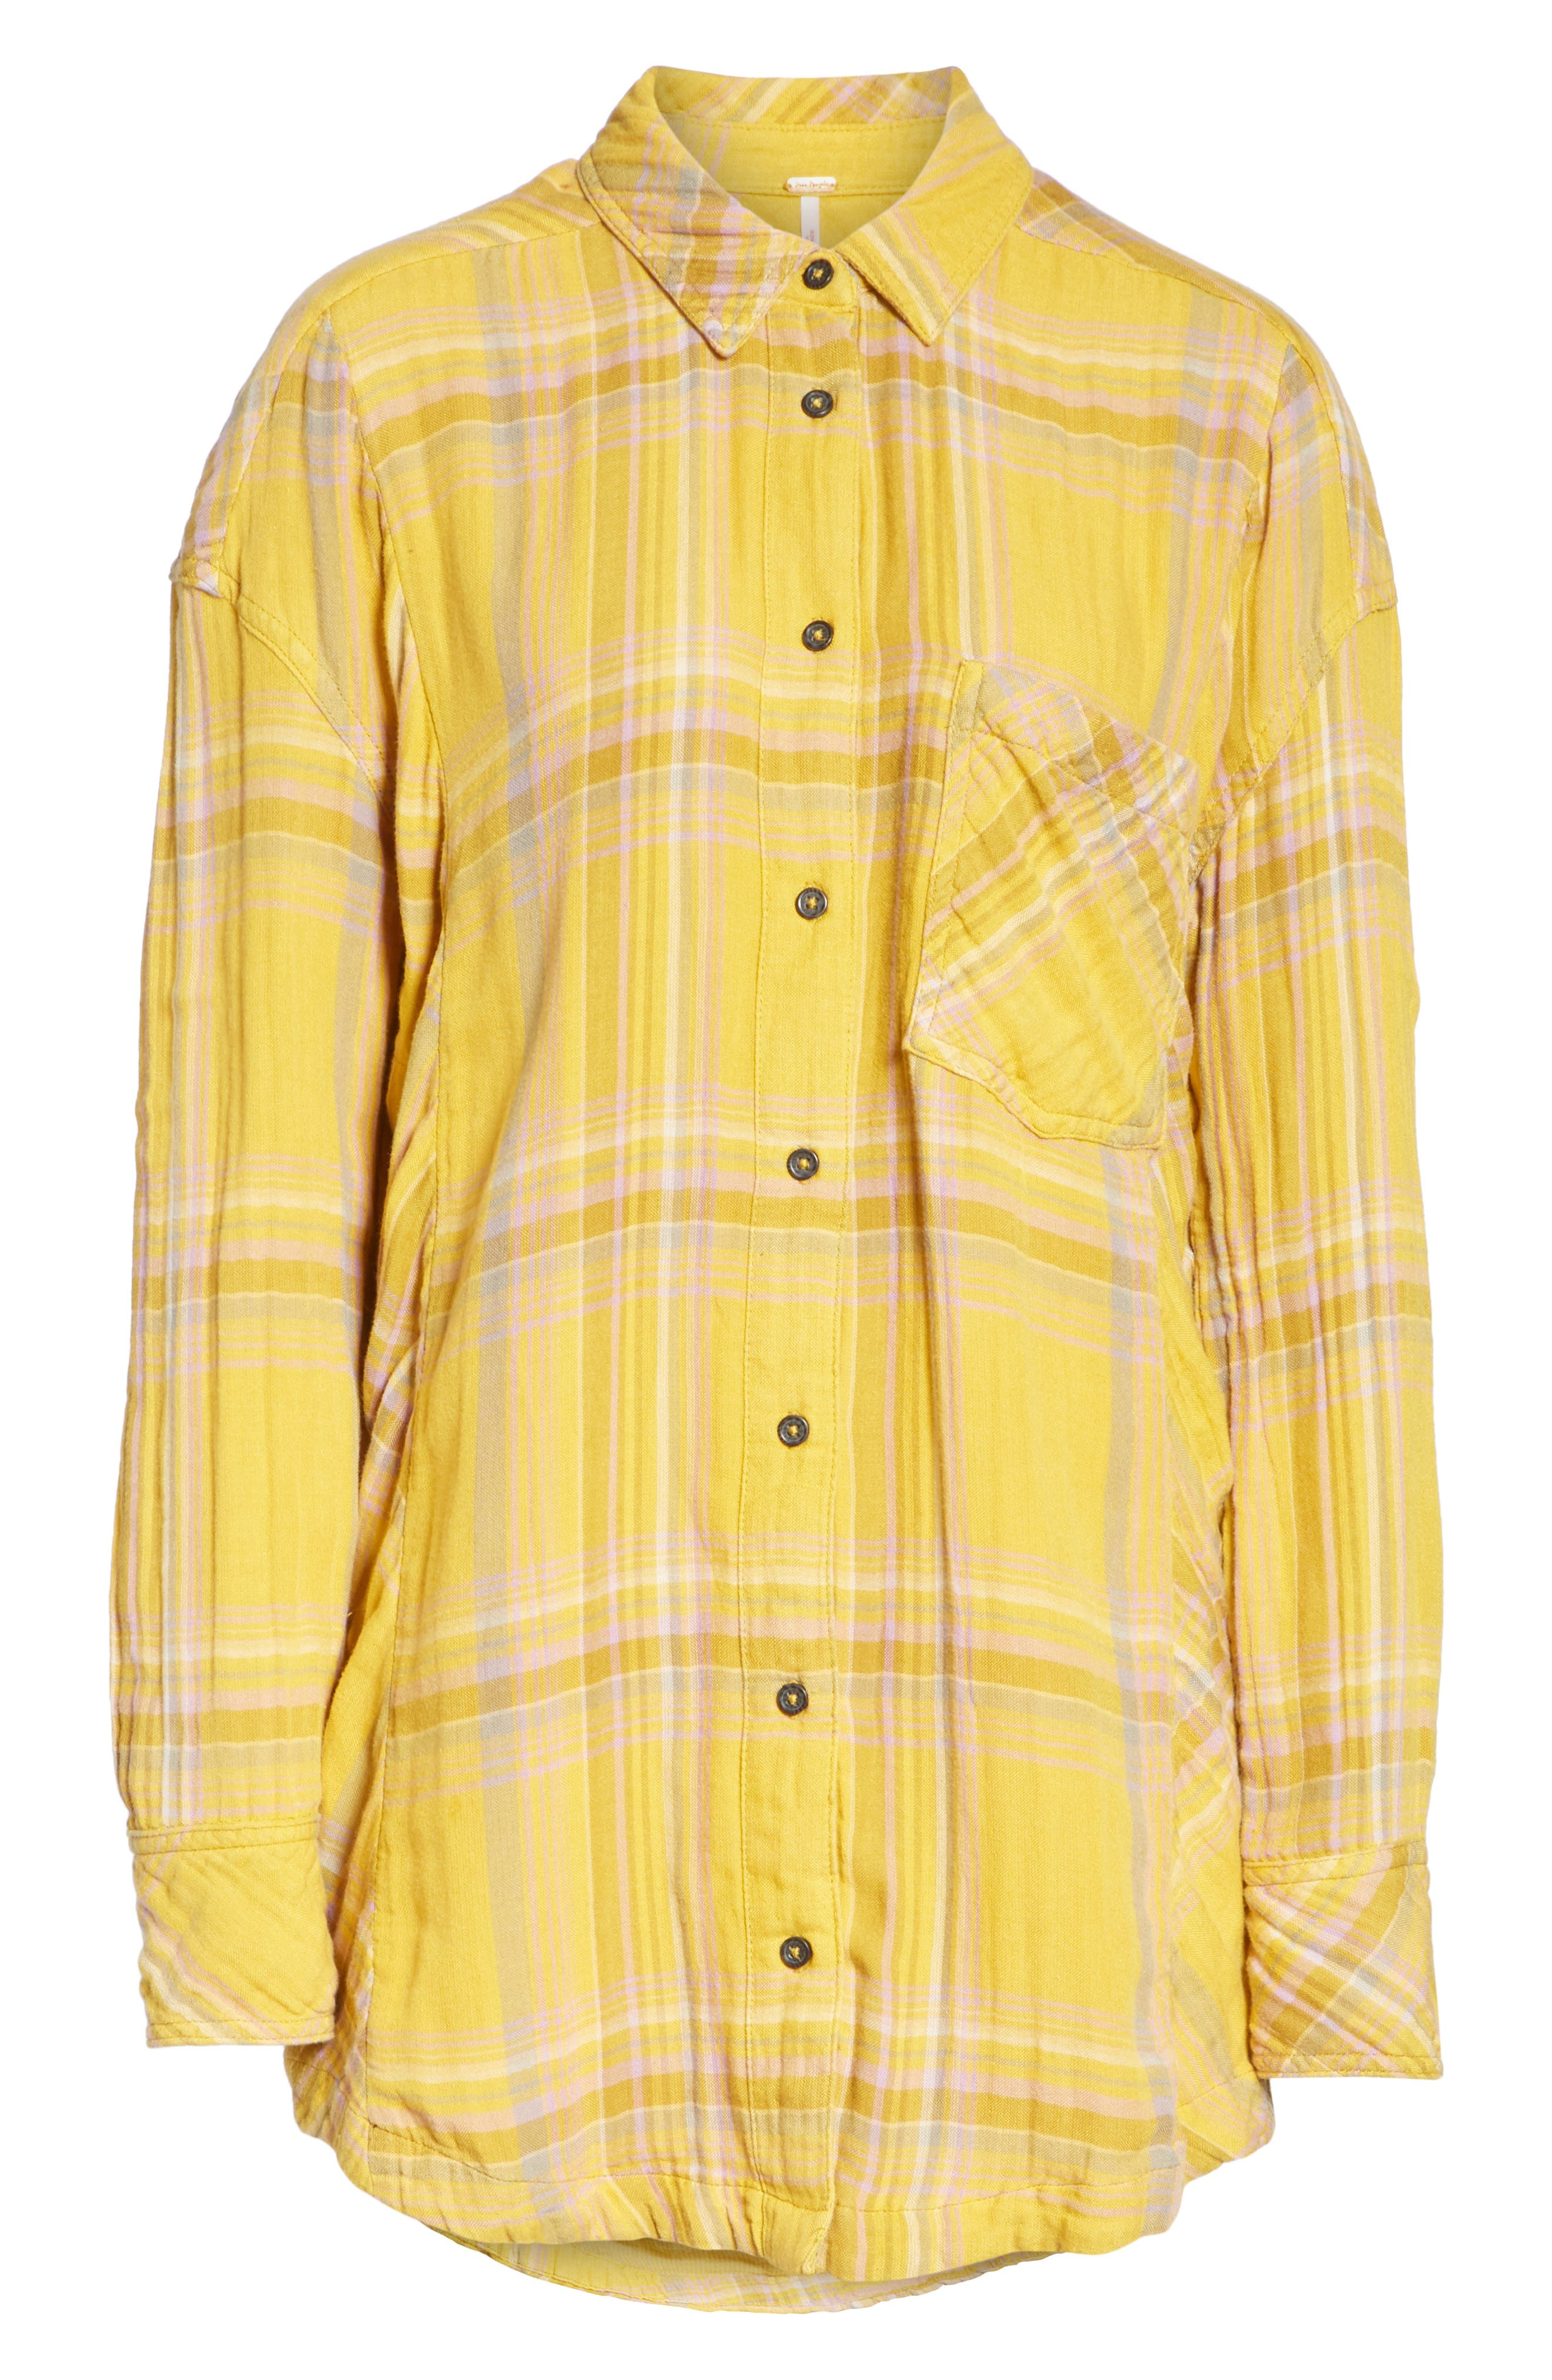 Nordic Day Top,                         Main,                         color, Yellow